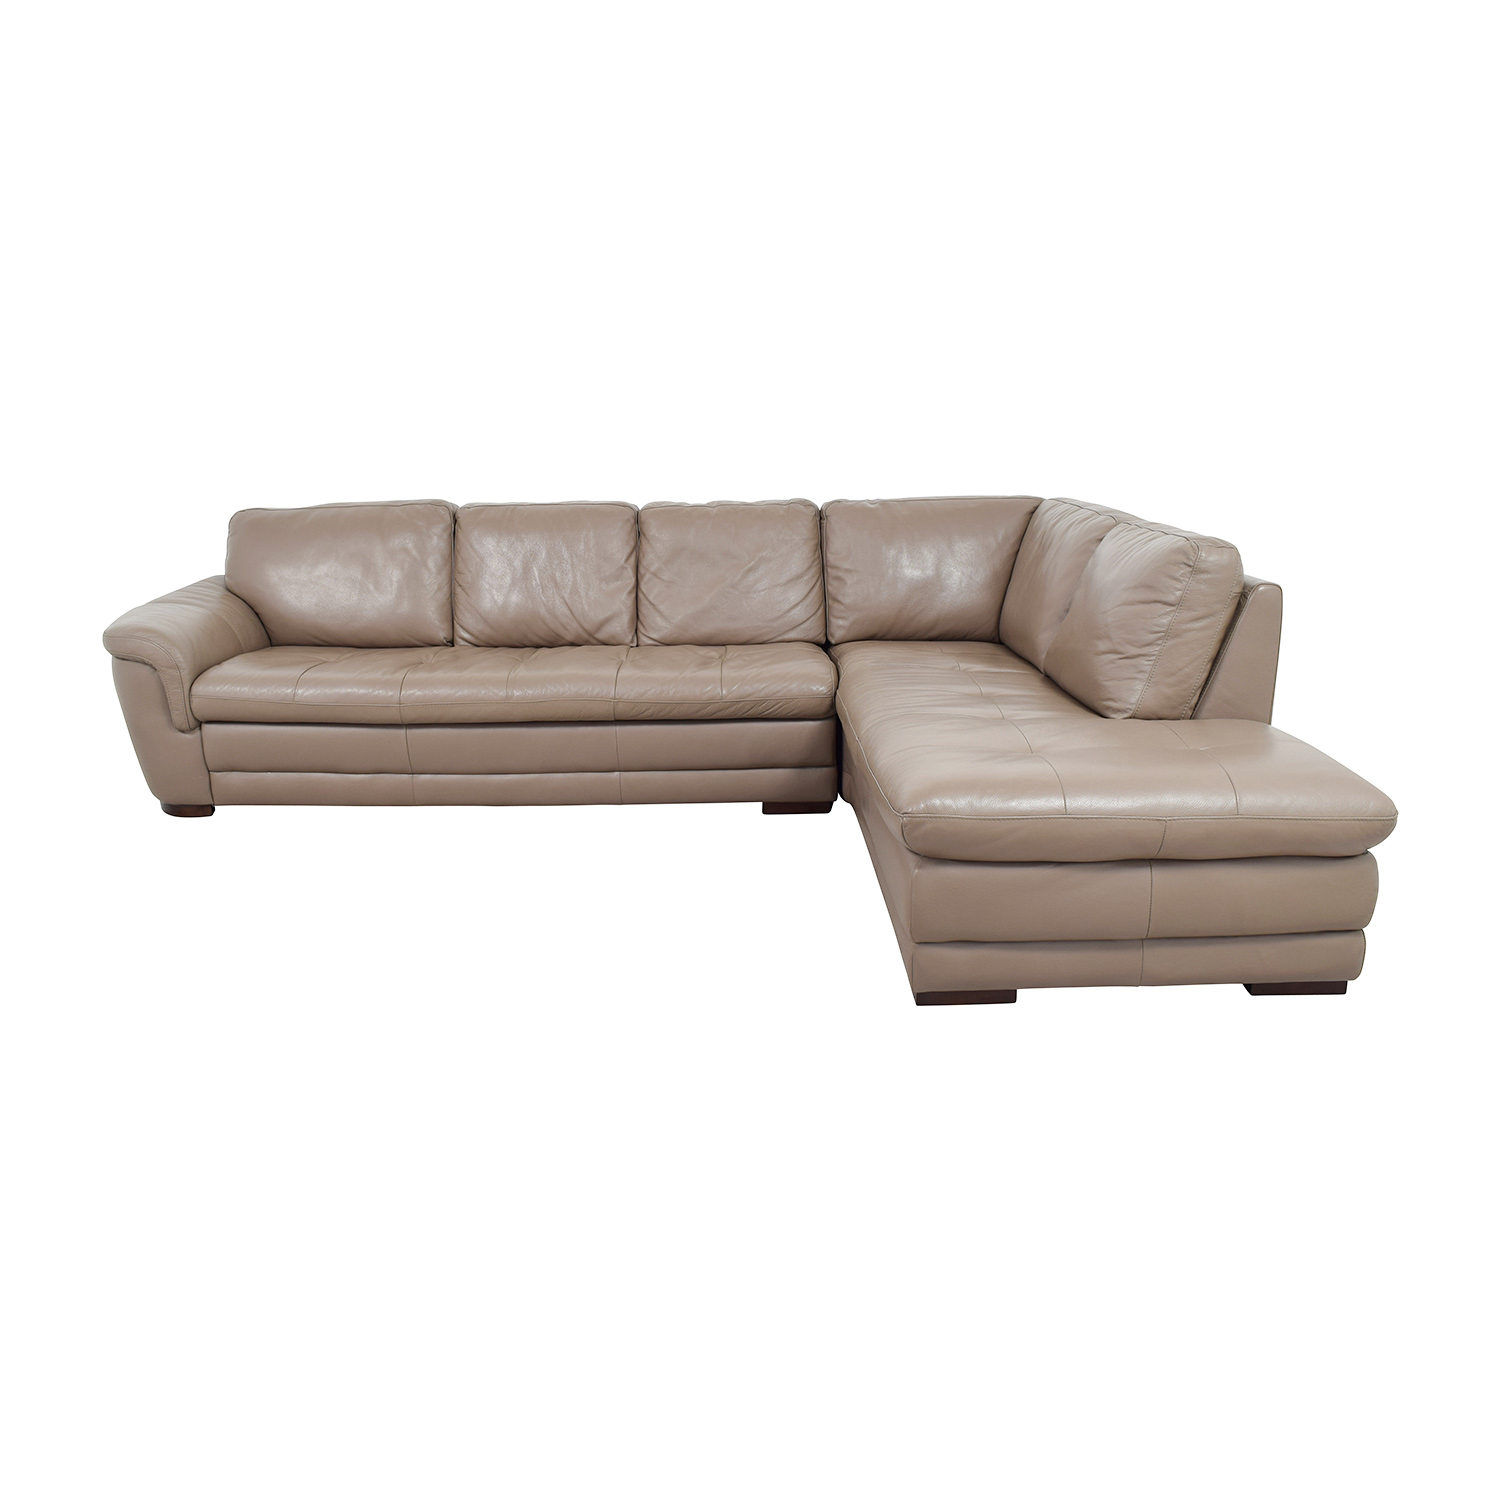 74 off raymour flanigan raymour flanigan tan tufted leather sectional sofas